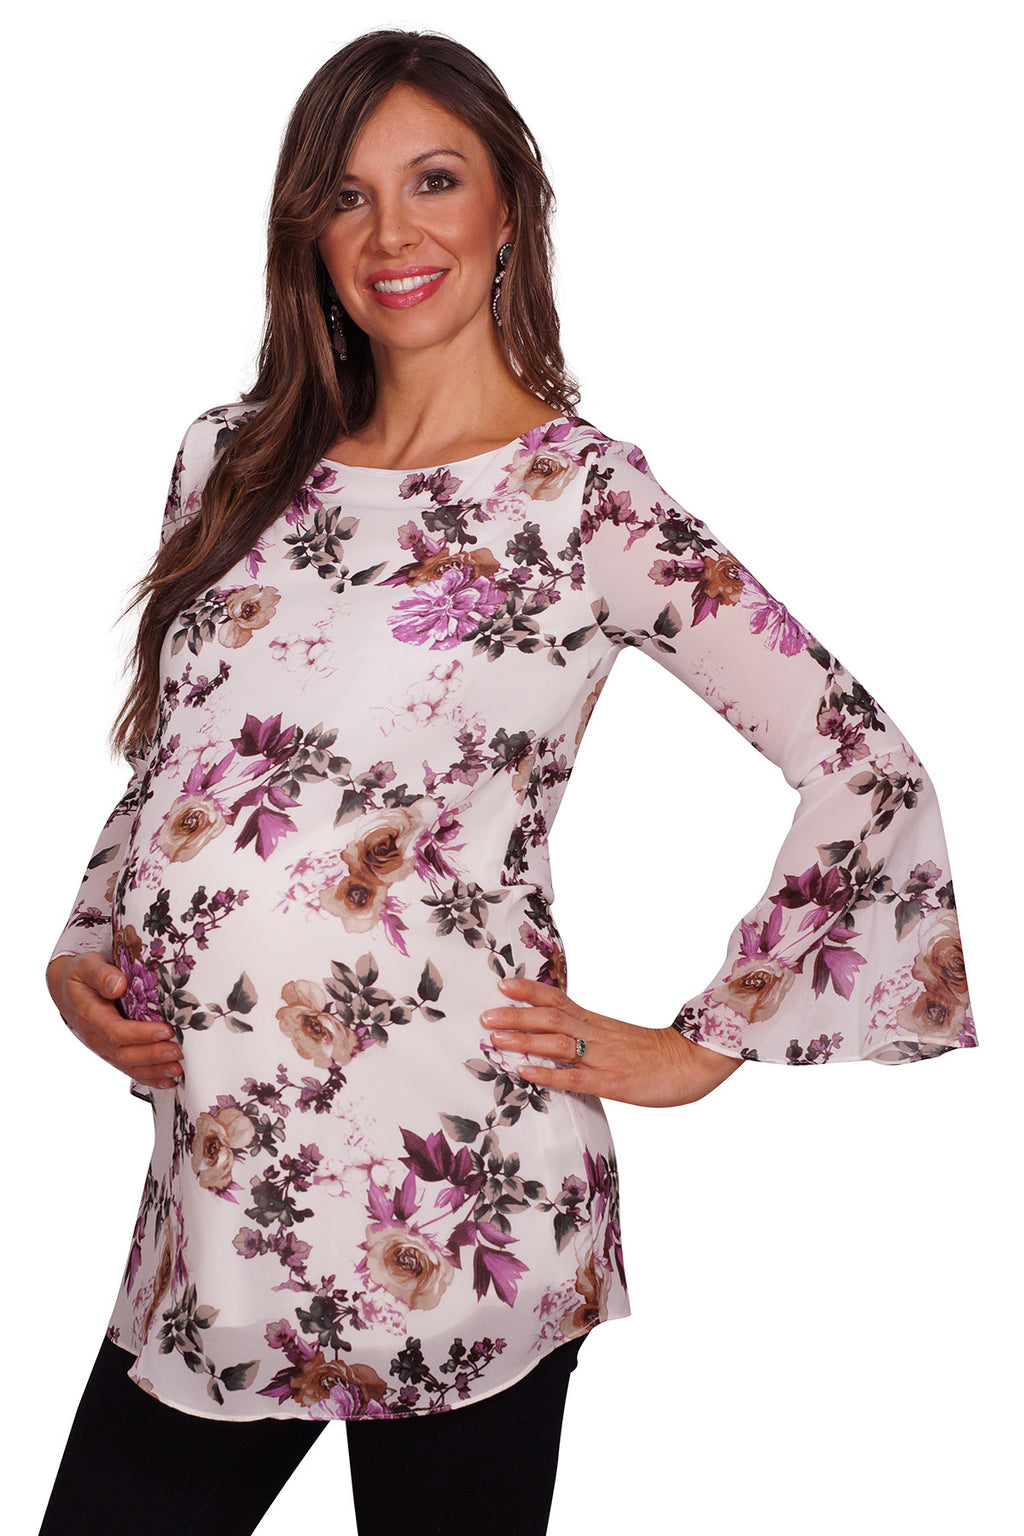 Floral Maternity Tunic - Mommylicious